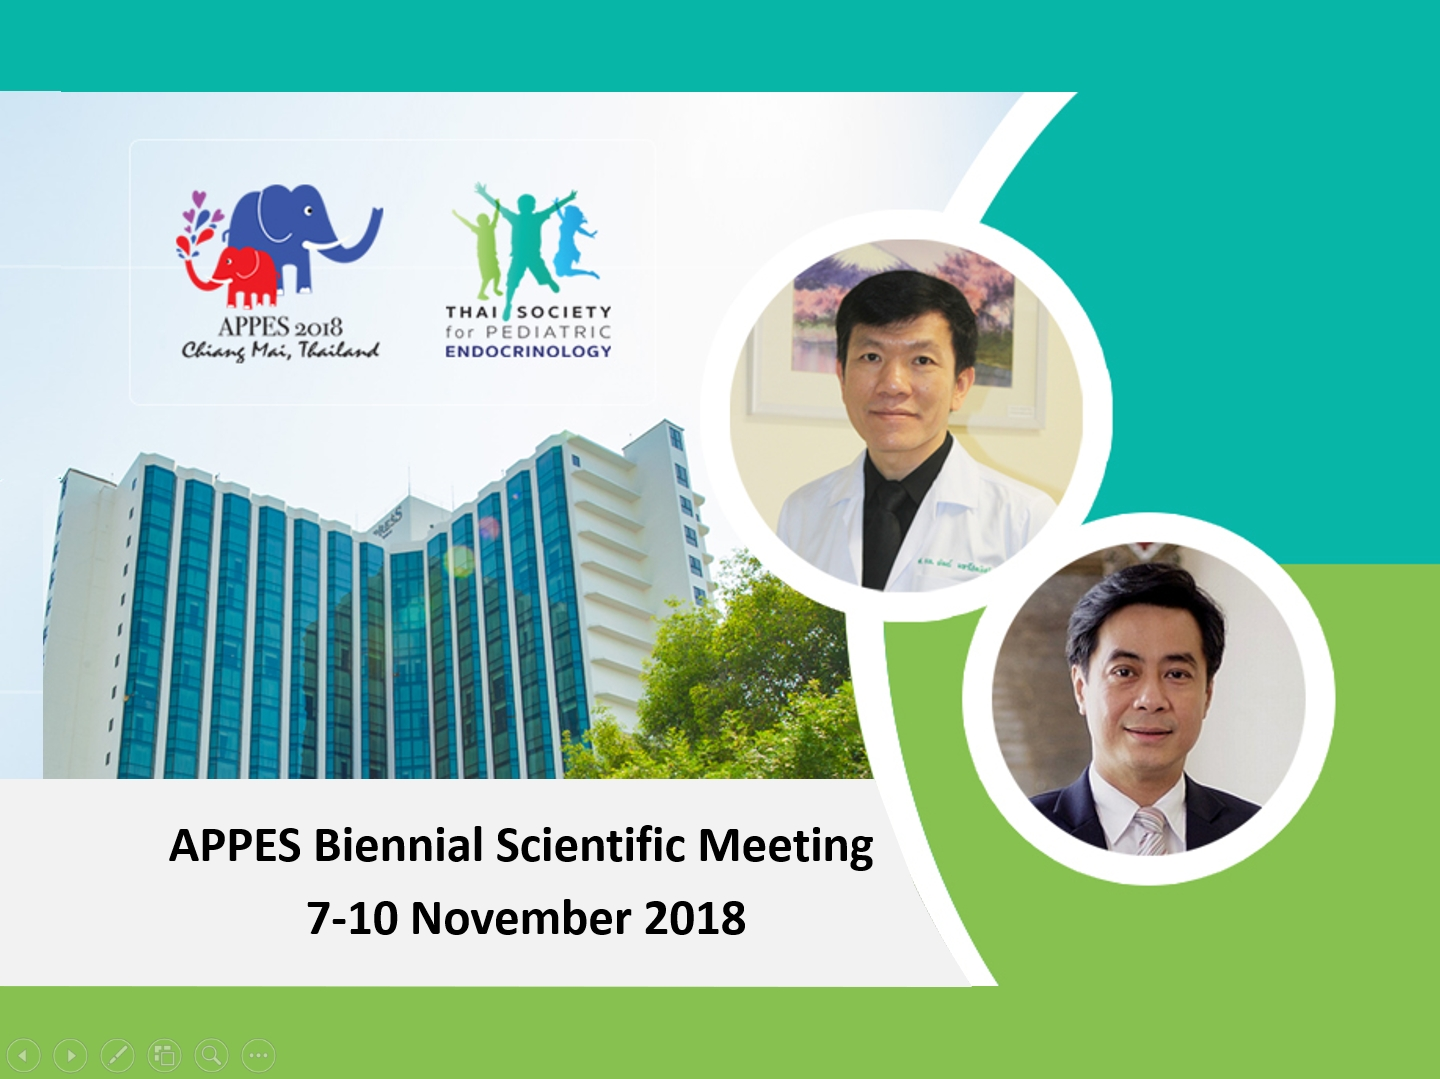 APPES Biennial Scientific Meeting 7-10 November 2018